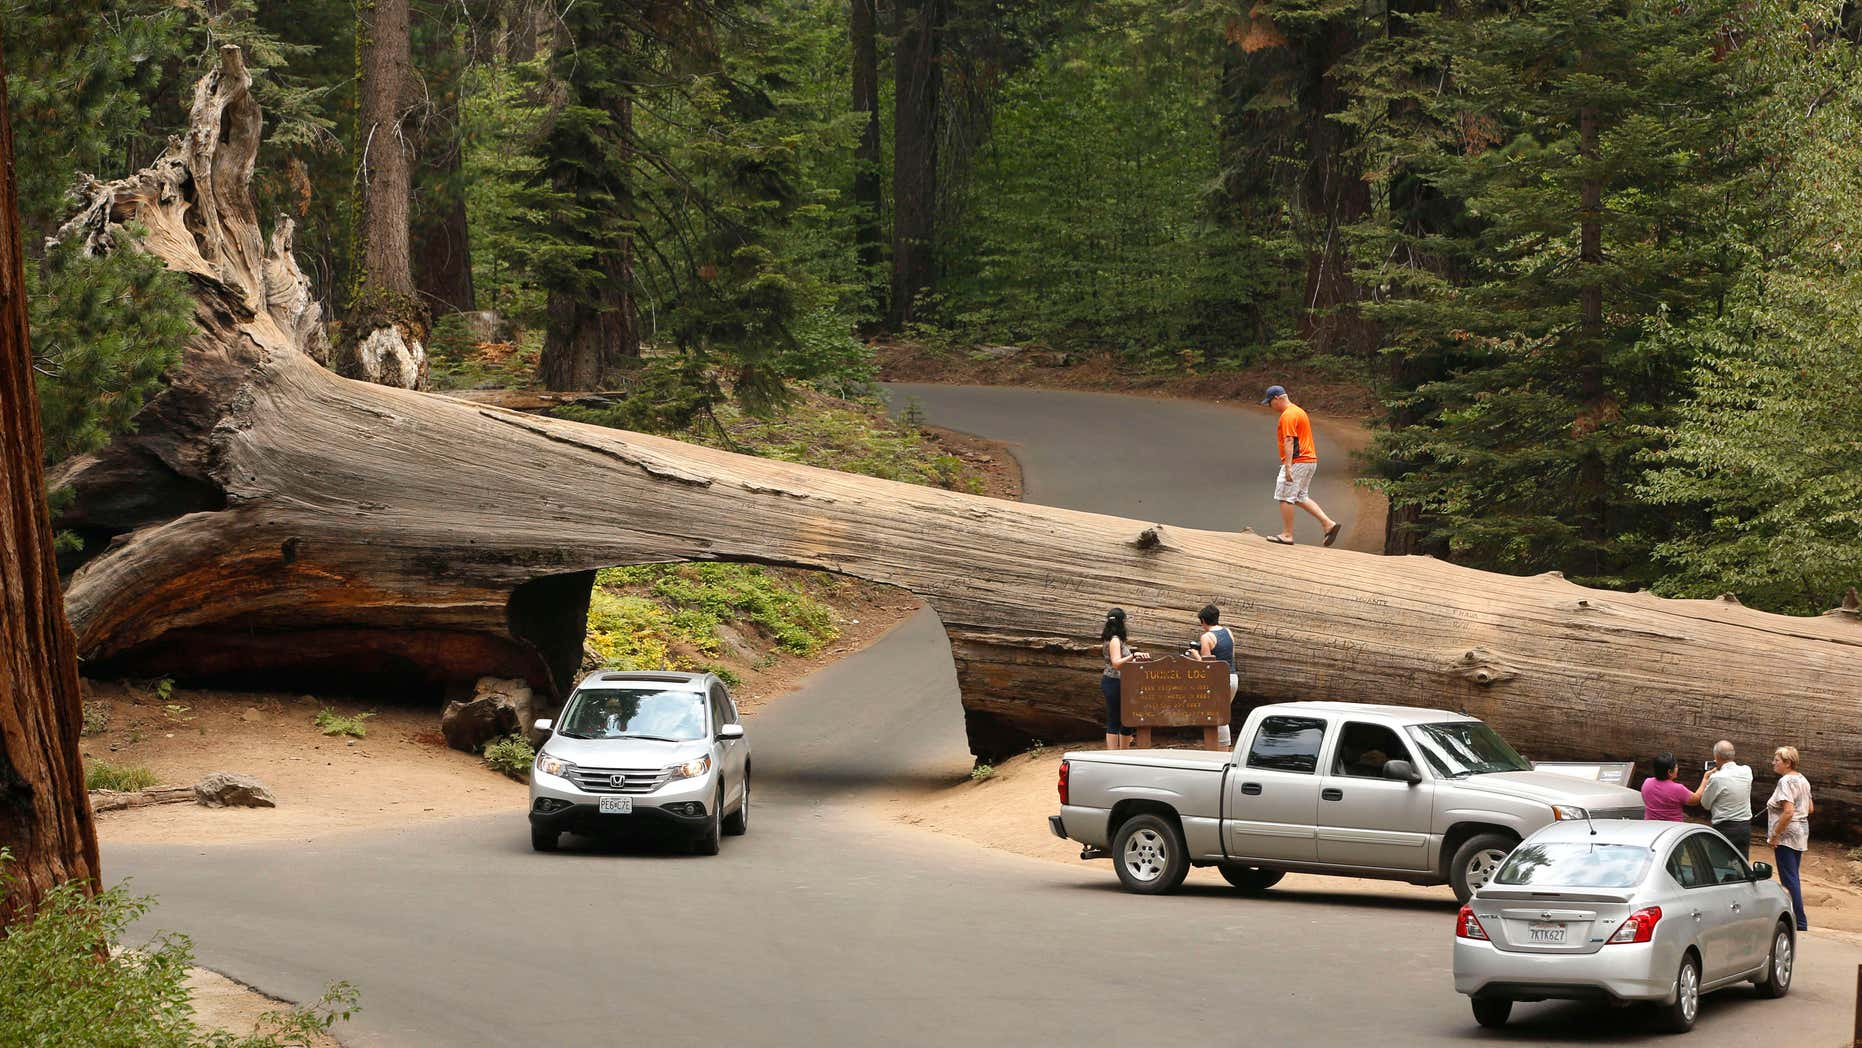 In this photo taken Friday Sept. 11, 2015, visitors explore the Tunnel Log, a passage cut through a Giant Sequoia tree that fell in 1937, at Sequoia National Park, near Visalia, Calif.